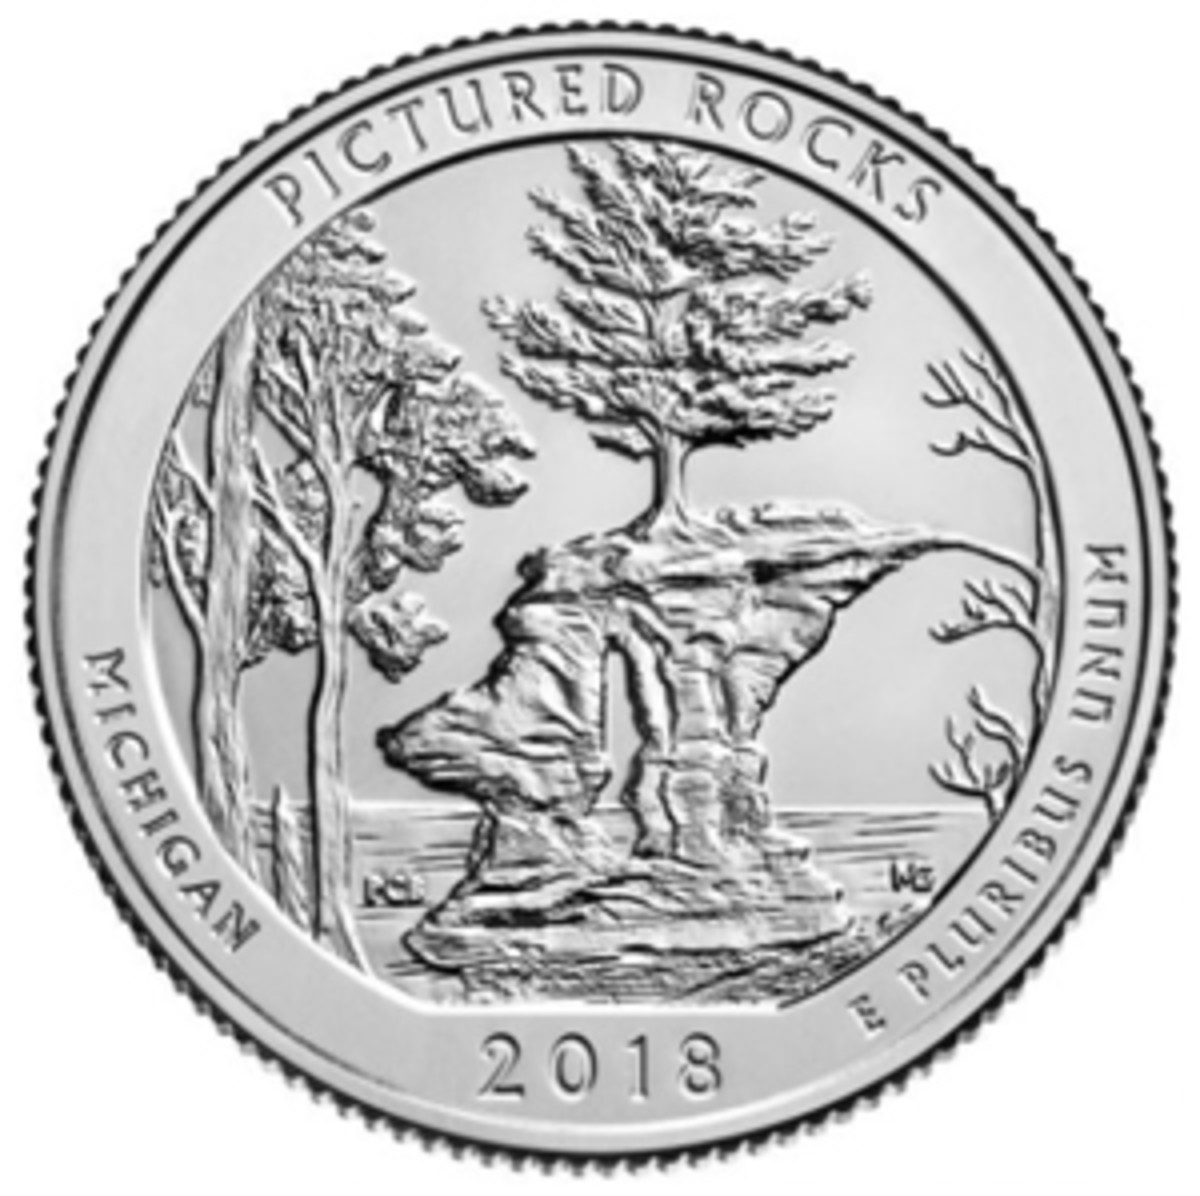 Reverse of the 2018 Pictured Rocks National Lakeshore quarter.